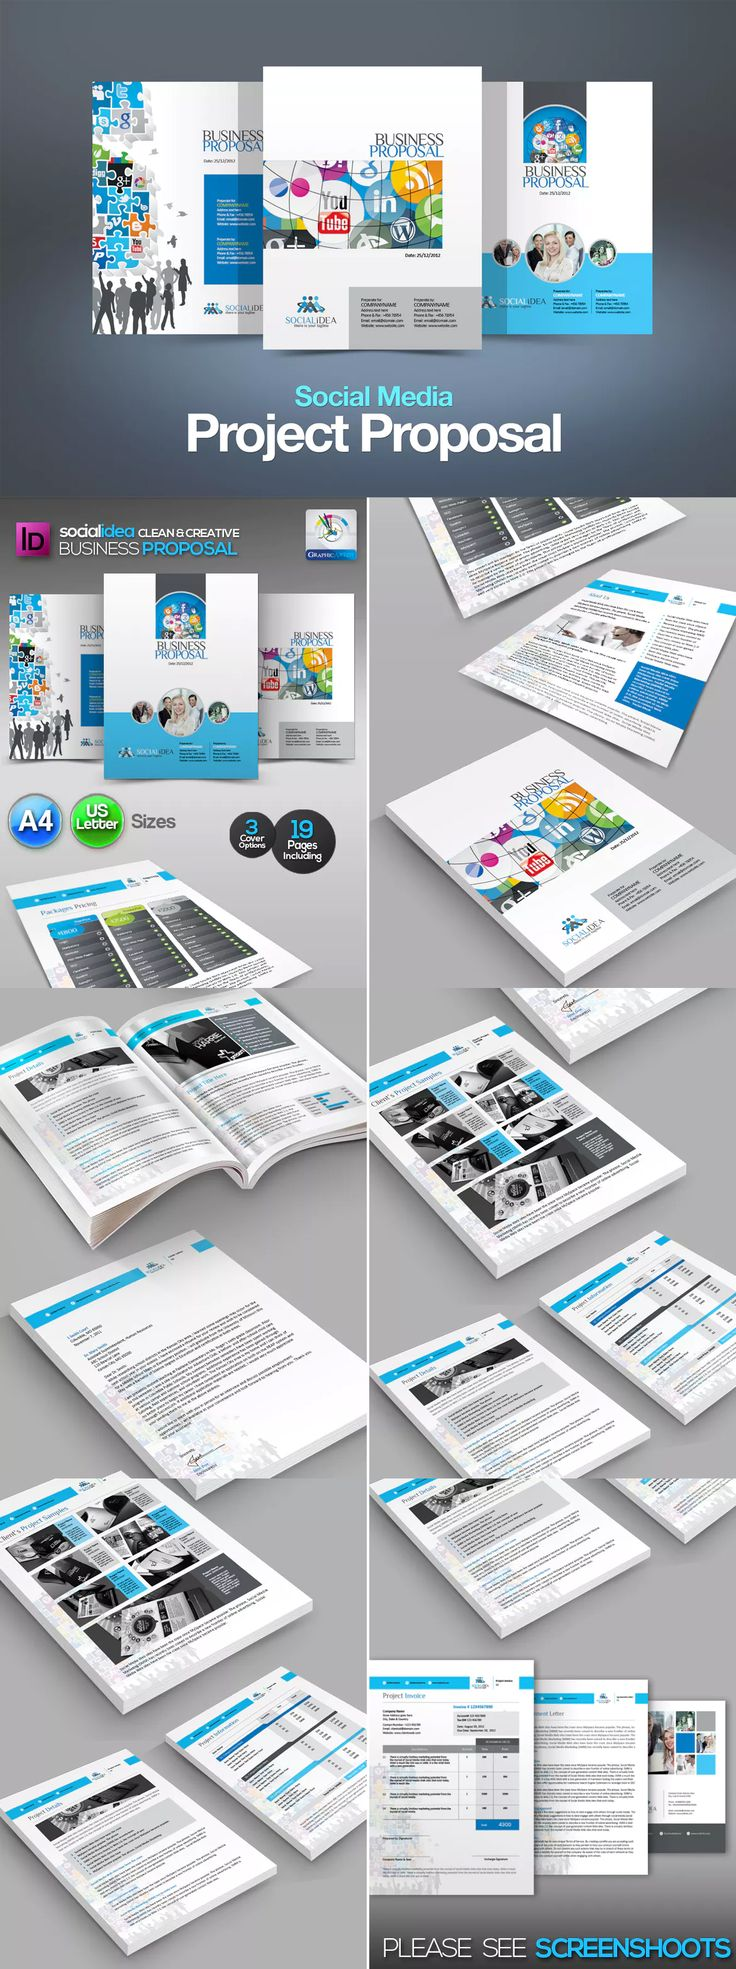 Social Media Business Project Proposal Template InDesign